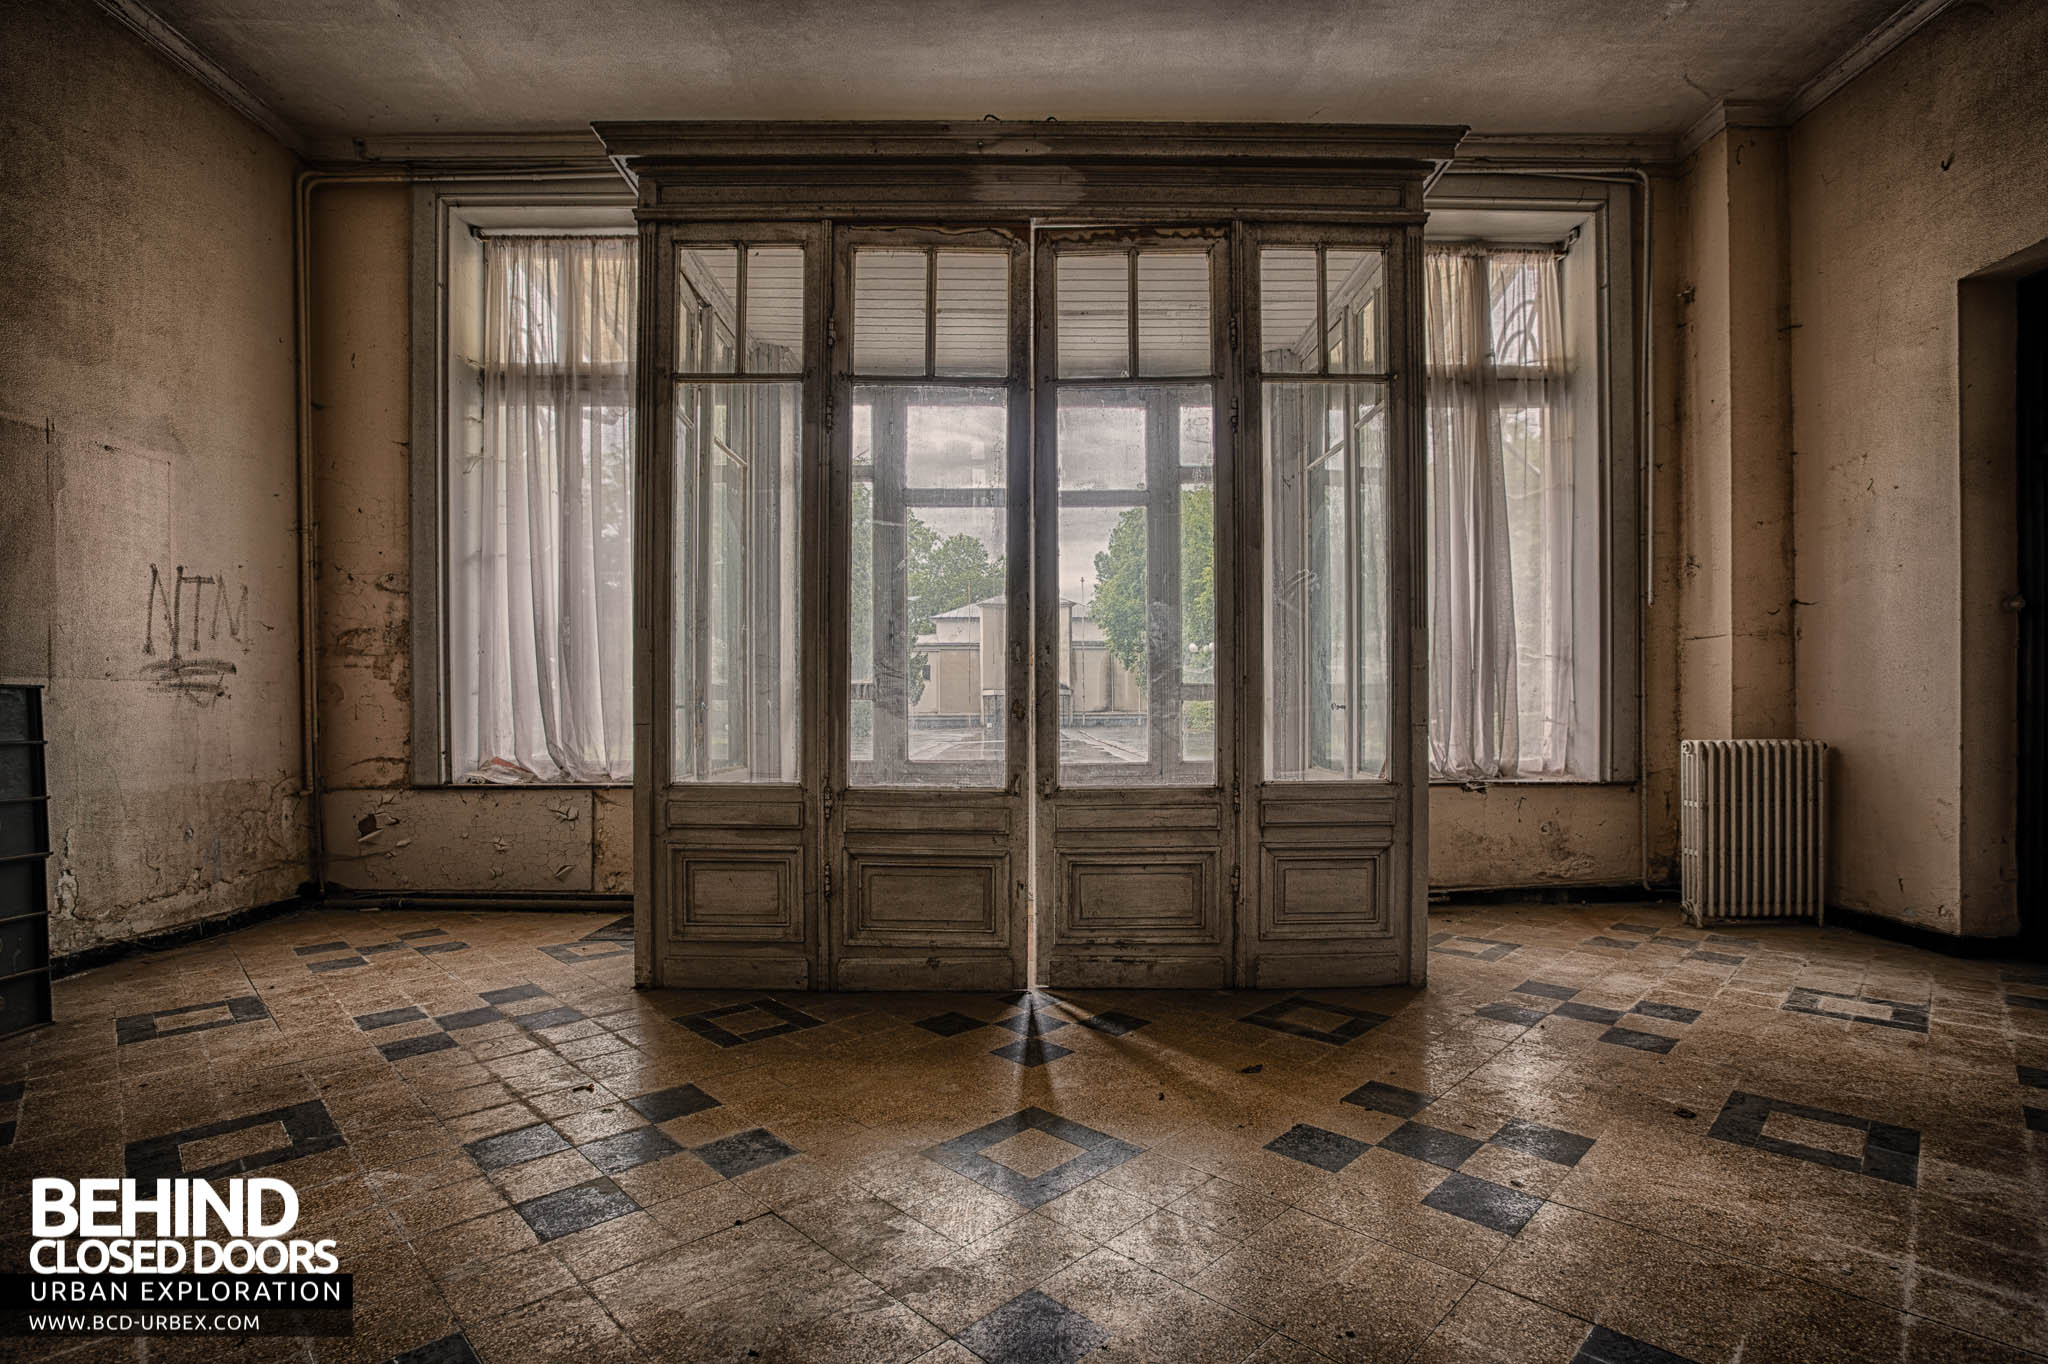 Hotel Thermale Aka Hotel Des Thermes France 187 Urbex